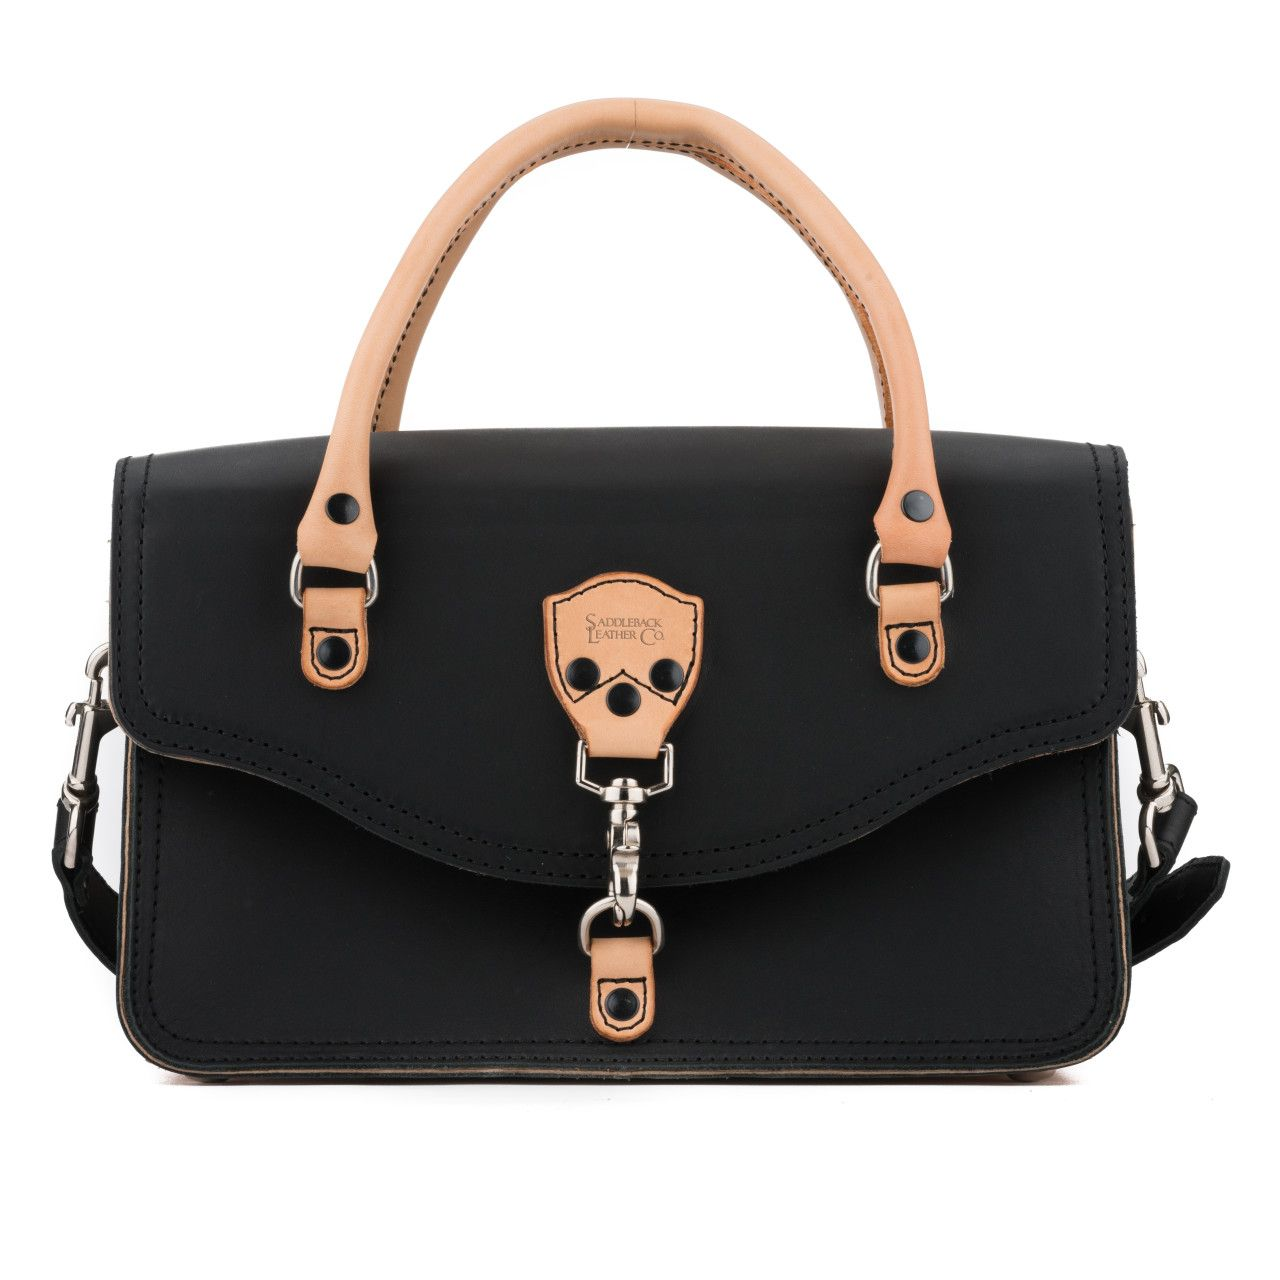 leather satchel purse in black leather